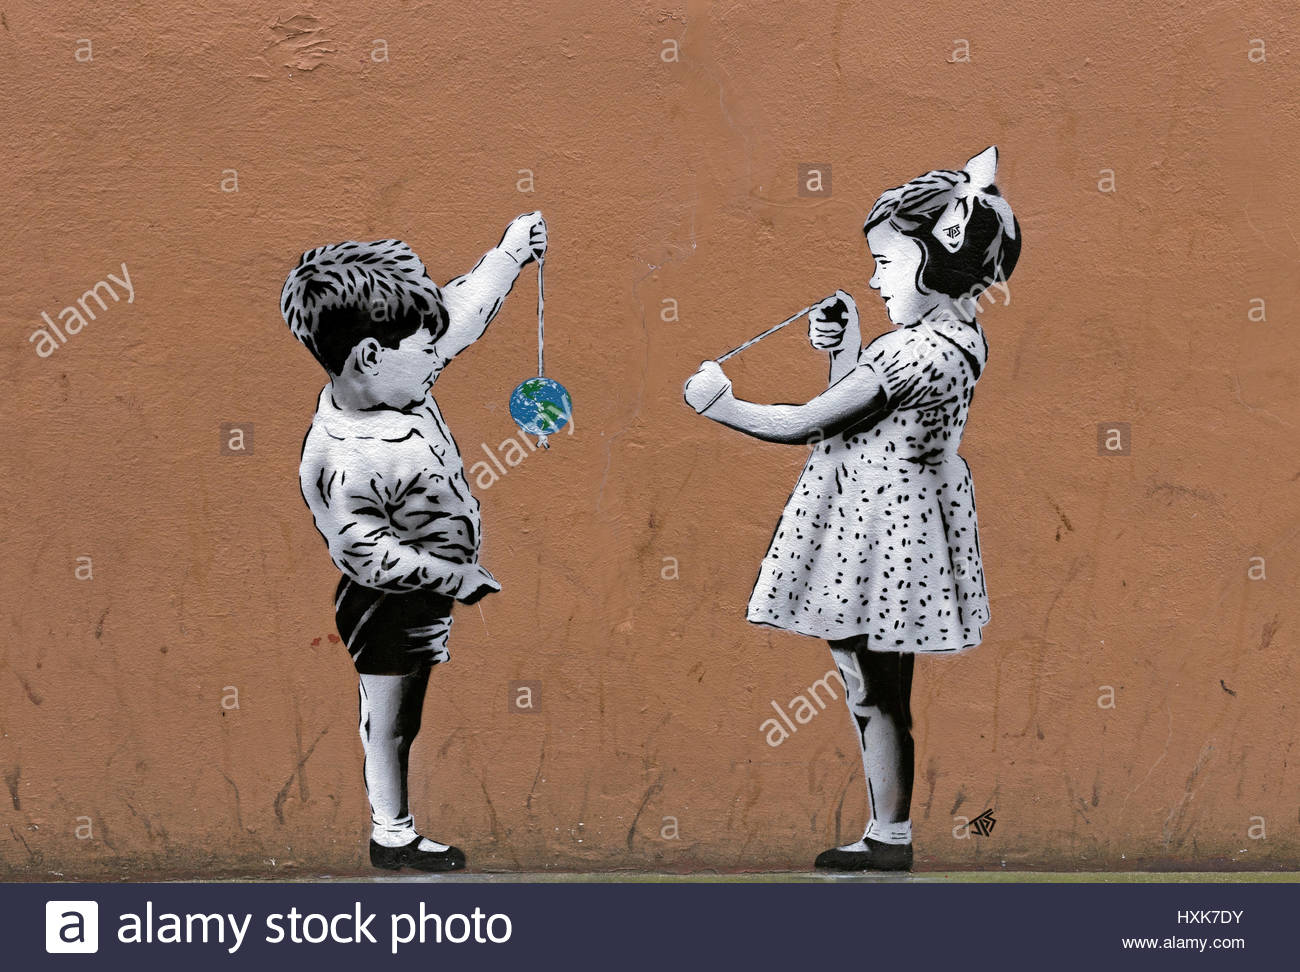 A piece of street art by JPS in Weston-super-Mare, UK shows two children playing conkers with one of the conkers - Stock Image